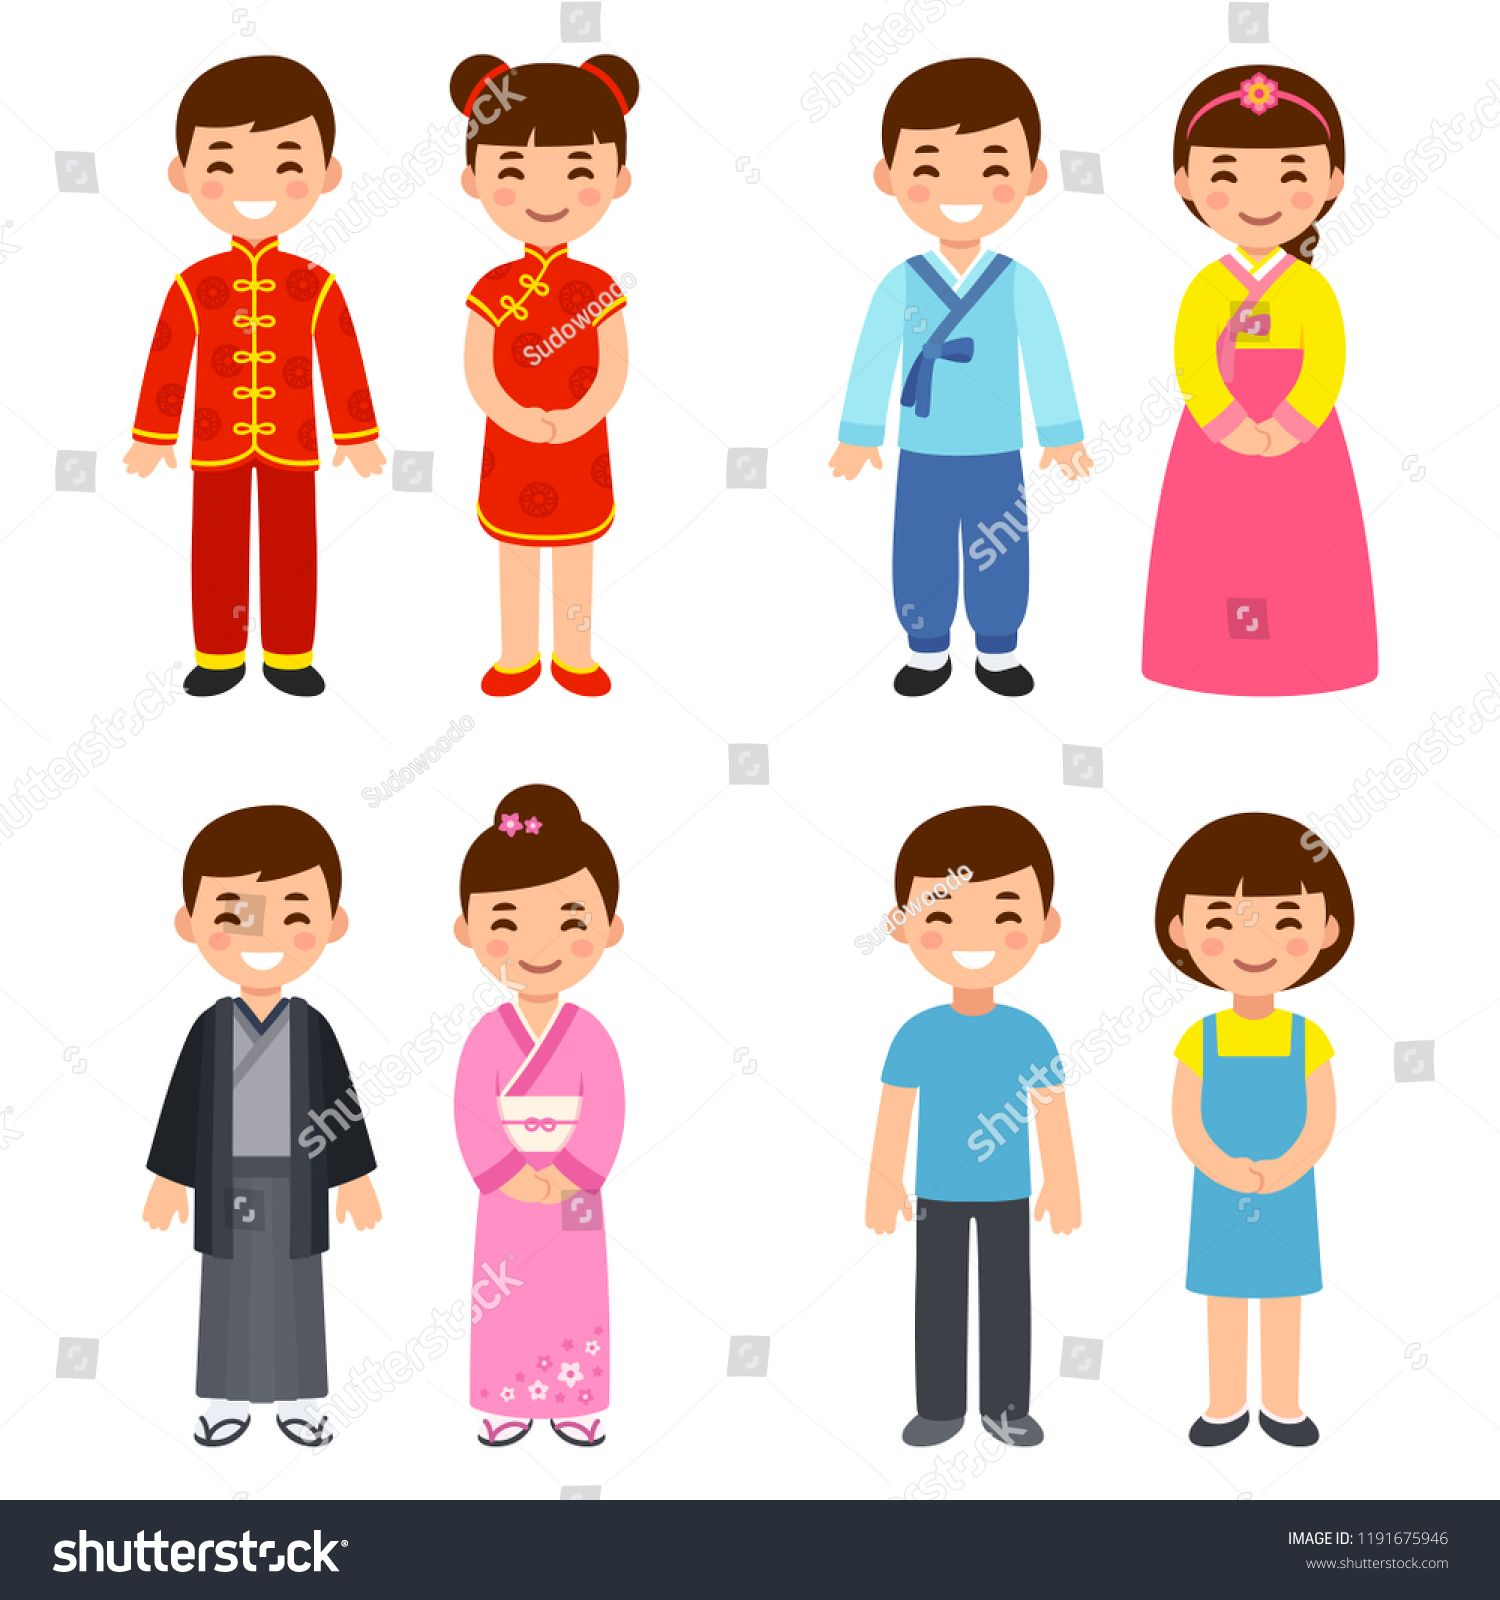 Asian grandparents clipart banner transparent Cute cartoon children in traditional costumes of Asian countries ... banner transparent